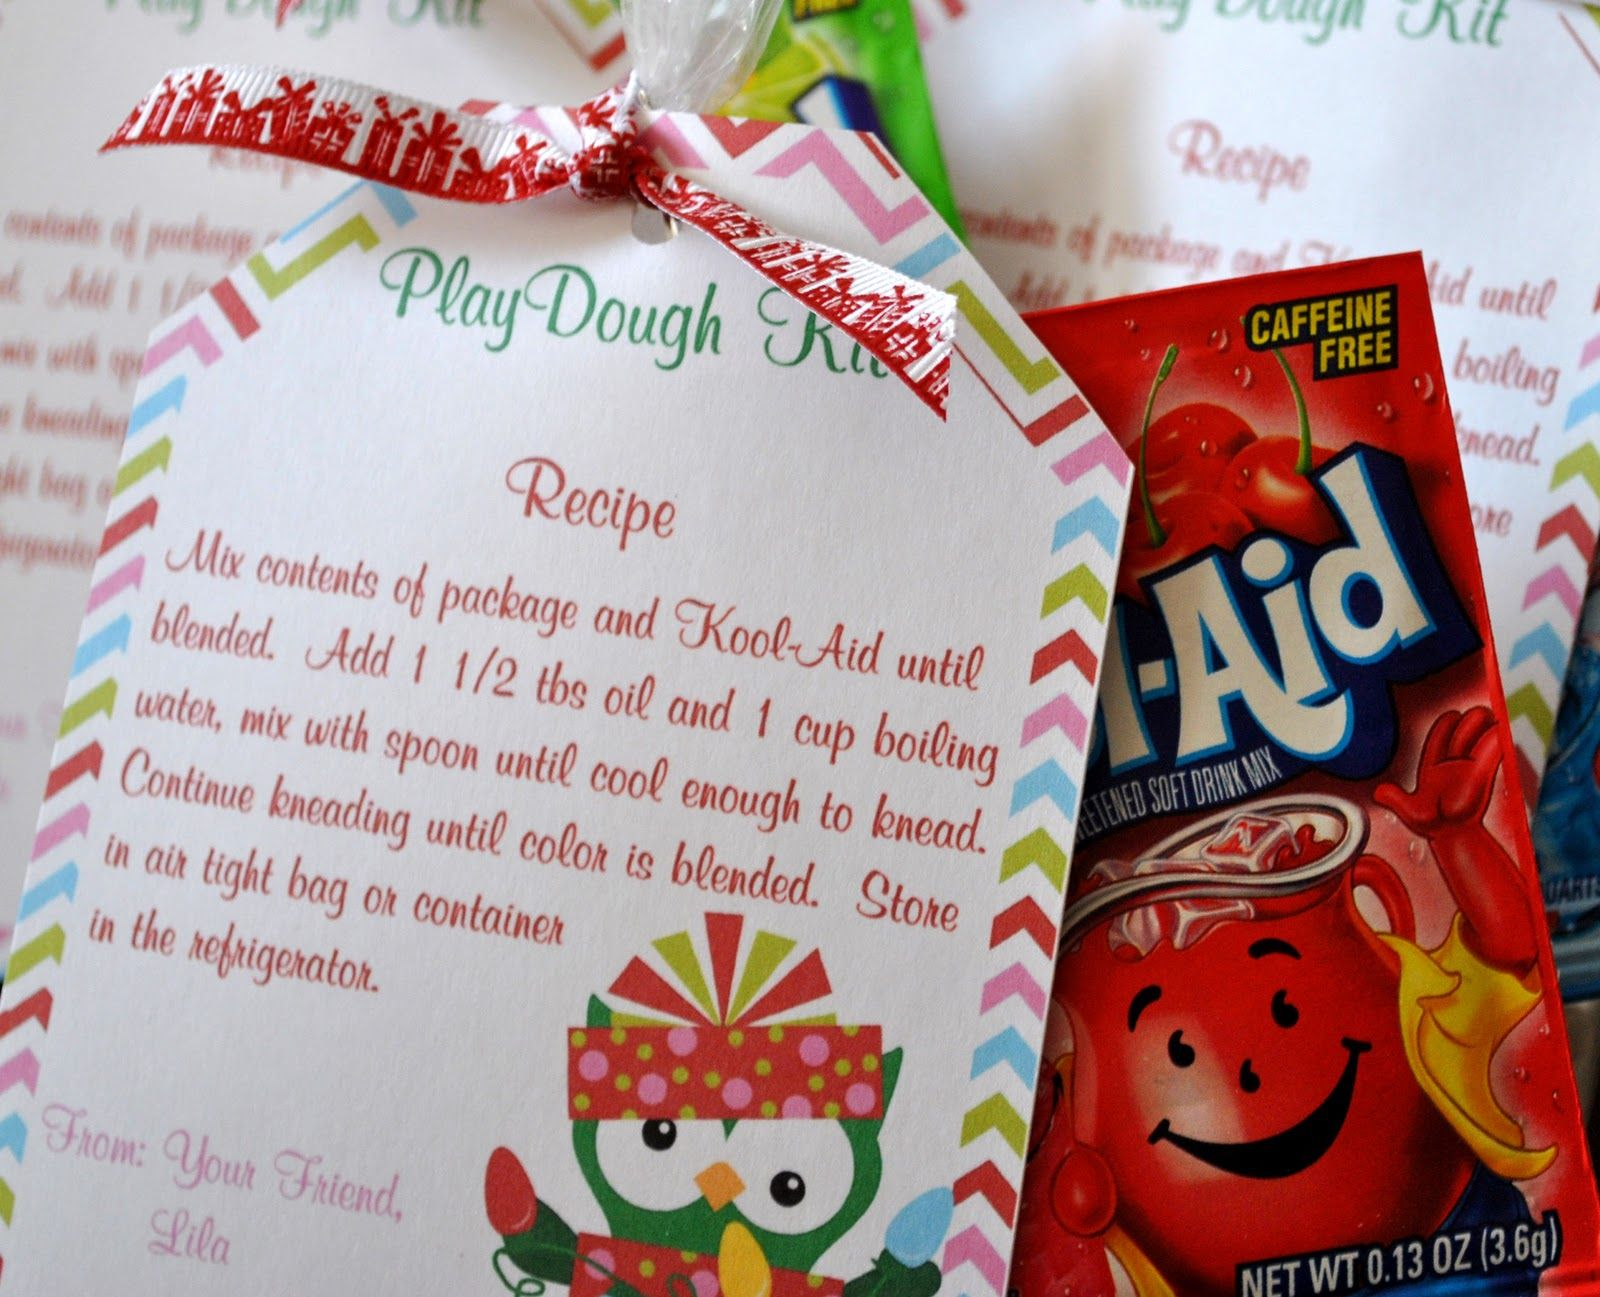 Sunla Designs Freebies Kool Aid Play Dough Kit Printable Christmas Goody